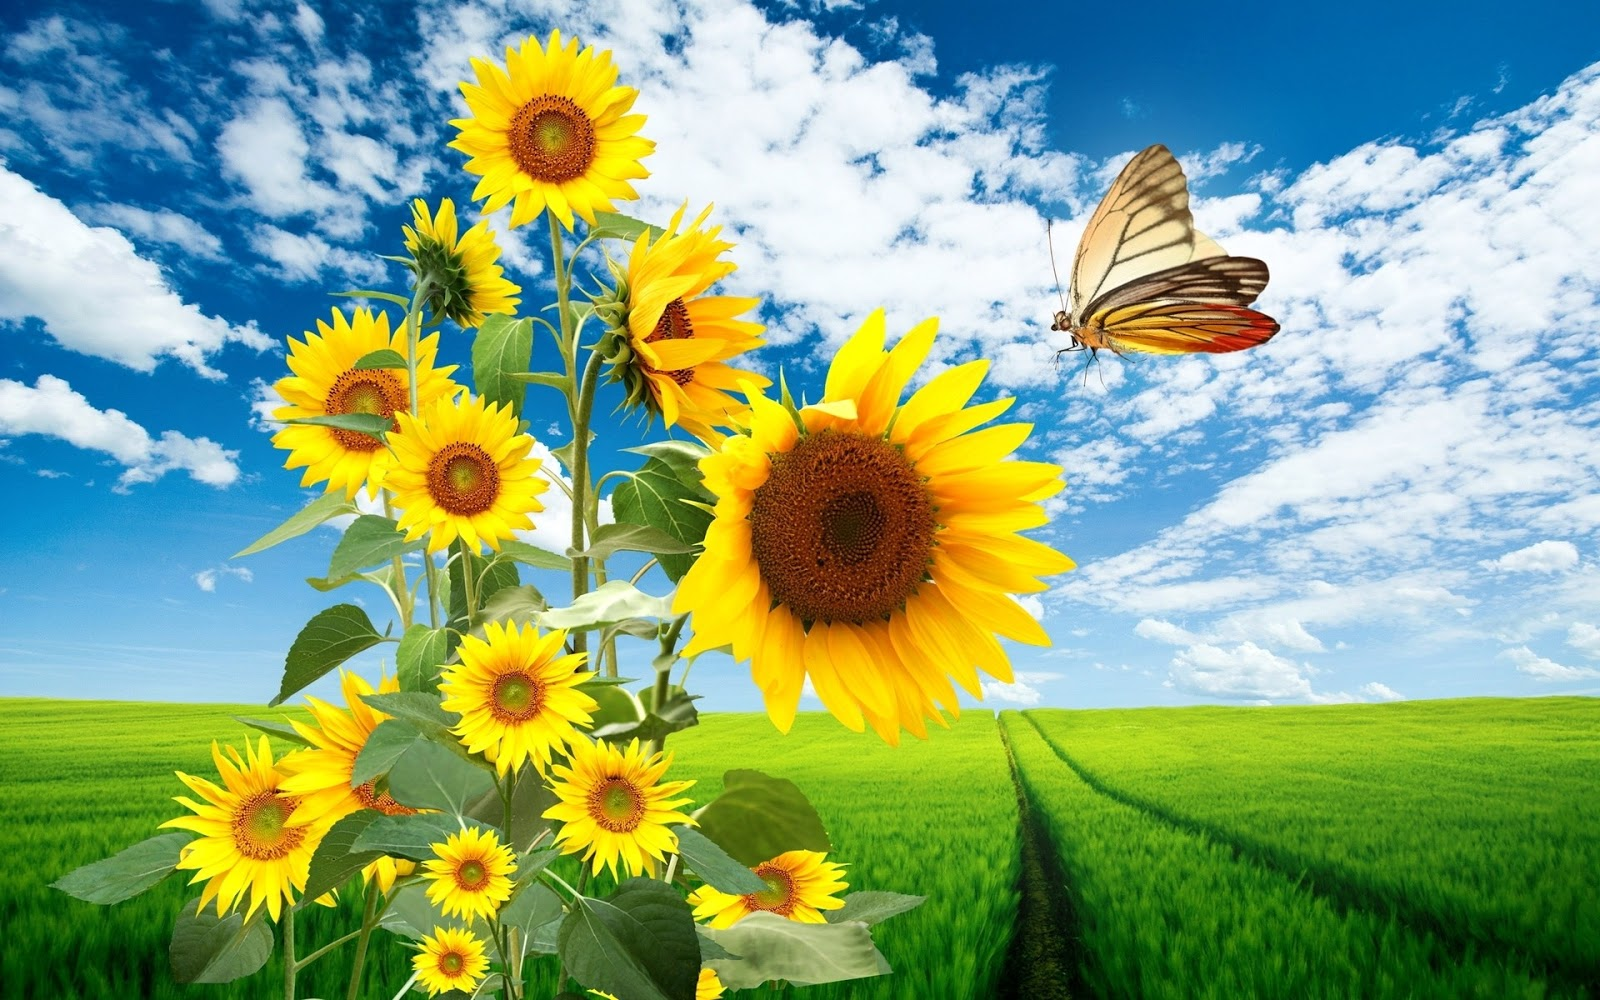 Wallpapers sols nature sunflowers hd wallpapers for In wallpaper